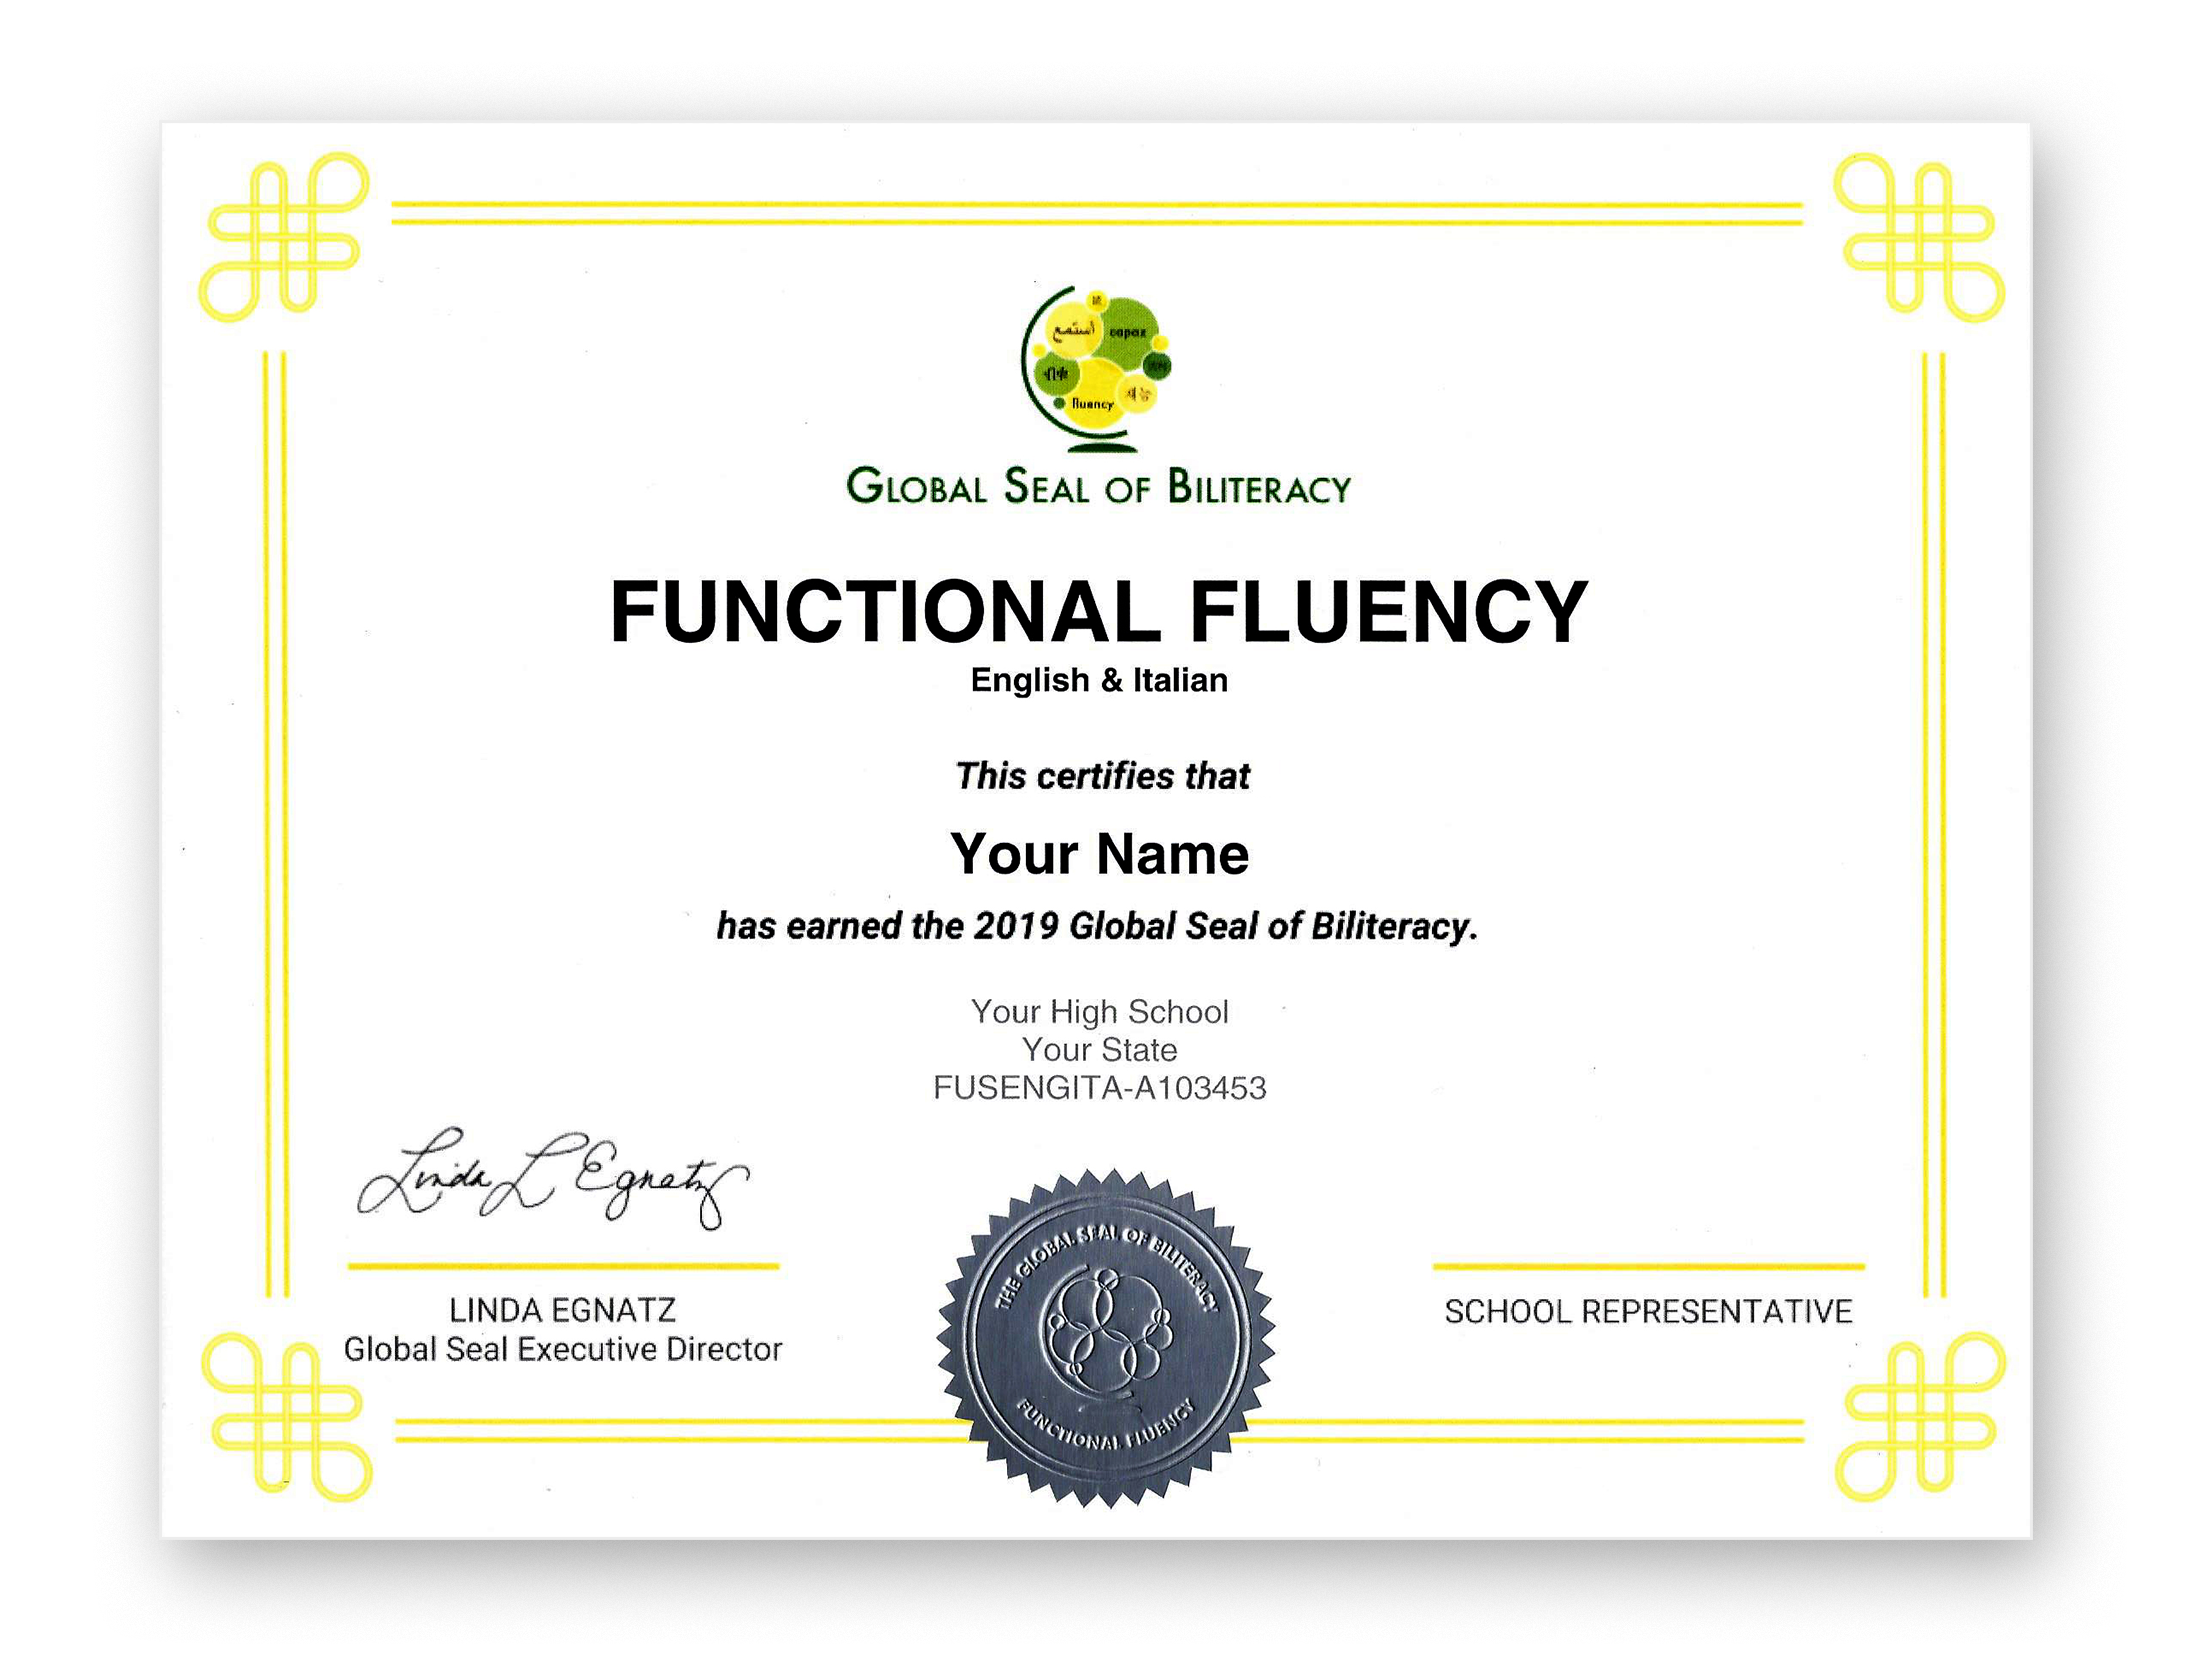 GSB Functional Fluency Award Mockup Drop Shadow (2).png